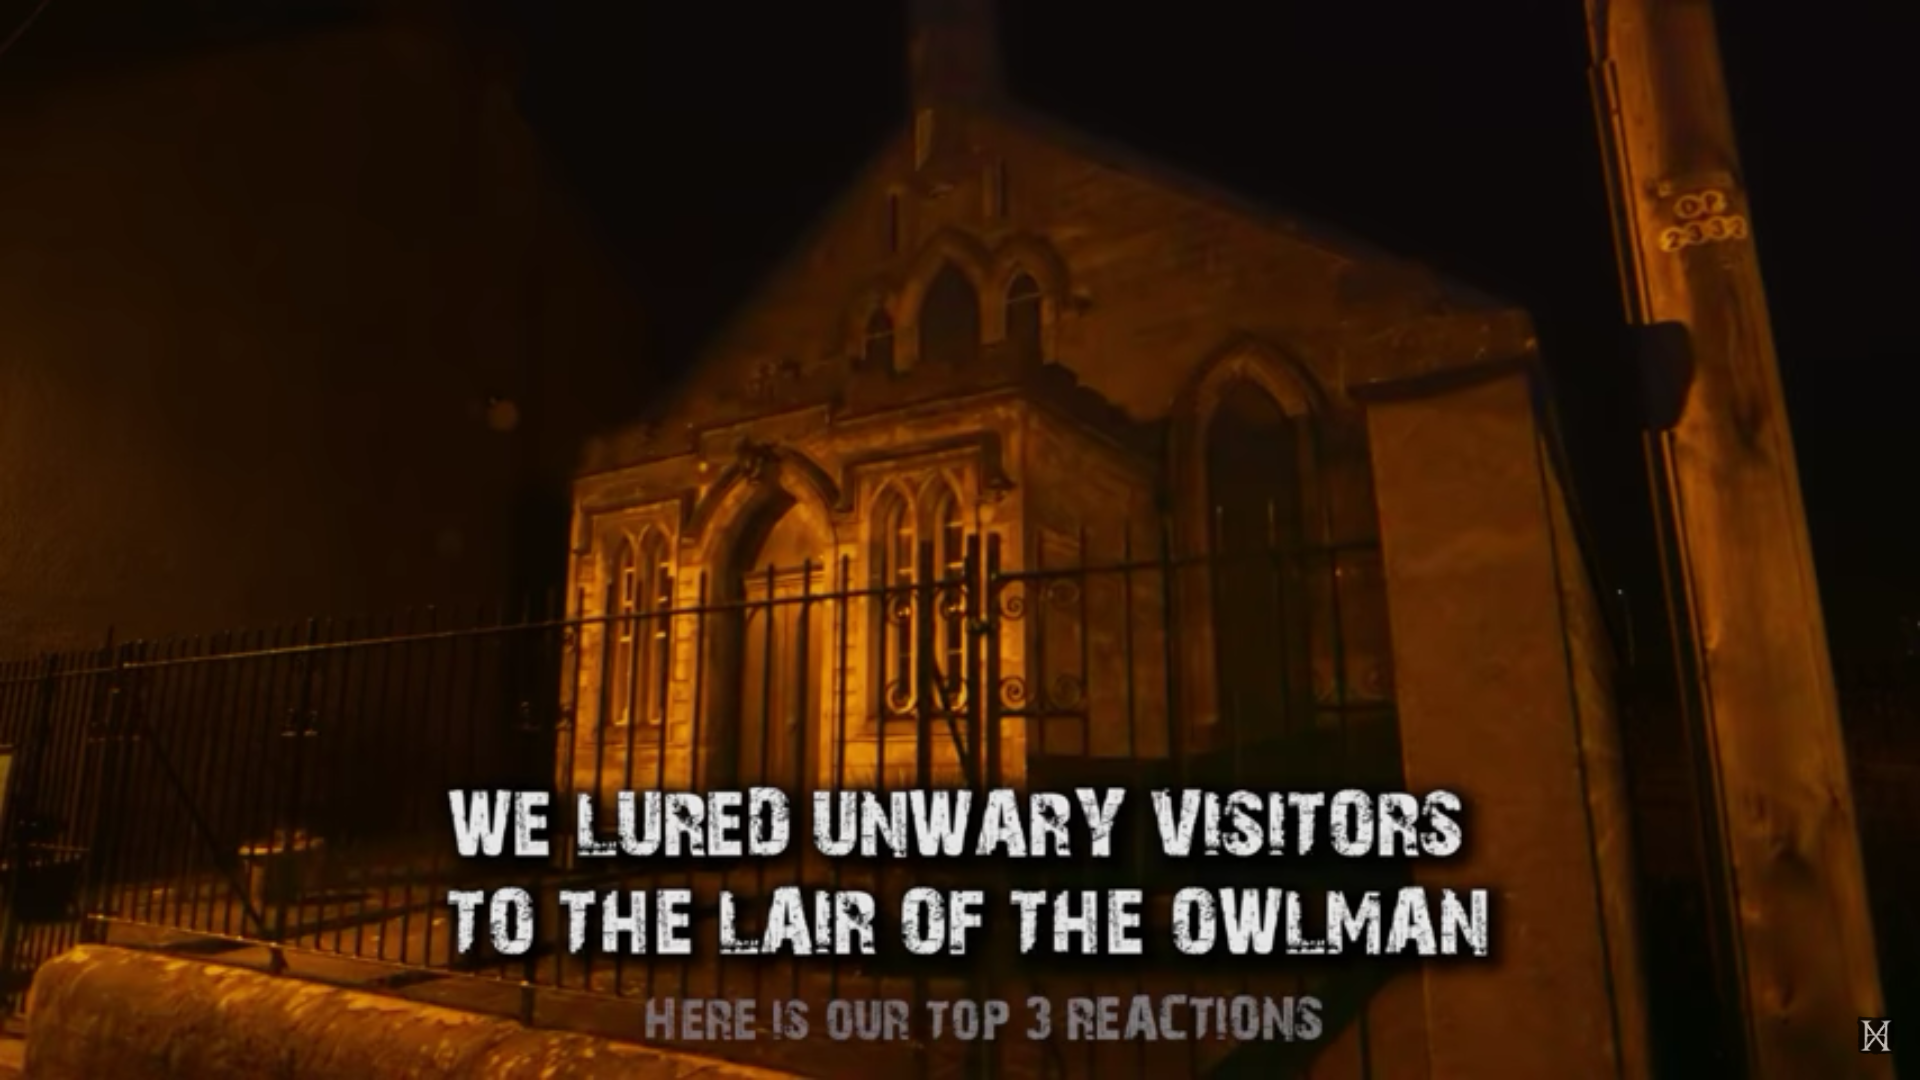 """The Owlman Returns To Terrify The Public In His Most Epic Prank Yet  You might remember The Owlman from a series of pranks set in a creepy abandoned hospital that went viral last year. Now, the feathered fiend continues his reign of terror in an epic new prank. Watch as visitors to a church in Fife, Scotland get the fright of their lives when the Owlman drops in, backed up by a terrifying throng of masked cultists!  This is undoubtedly the team's most ambitious, and outrageous prank yet, with a finale so absurd and hilarious that it truly has to be seen to be believed.  Created by Scotland's Hex Studios, The Owlman is the star of two feature films – cult favourite LORD OF TEARS and upcoming chiller THE OWLMAN: CHAPTER TWO.   THE OWLMAN: CHAPTER TWO, due for release later this month, sees The Owlman reprise his role as a nightmarish entity bent on creating chaos and suffering for all who cross his diabolical path. Shot in a haunted mansion in the Highlands of Scotland, the film is a classic spine-tingler, starring horror icons  Macarena Gómez  (DAGON, SHREW'S NEST) and Nicholas Vince (HELLRAISER, NIGHTBREED).    According to Hex Studios Director/Producer Lawrie Brewster """"Our YouTube channel is a really great way for us to connect with and build our audience. The Owlman pranks have proven to be especially popular, and of course they're tons of fun to make, but we're also producing creepypasta videos, mini-documentaries and all kinds of content that broaden the world of our films, and let fans reach out and interact with us and our creations.""""    To keep up with The Owlman's latest high-jinks, subscribe to Hex Studios' YouTube channel here: https://www.youtube.com/channel/UChKvLAa0i8fe0ASFThnyGUw"""